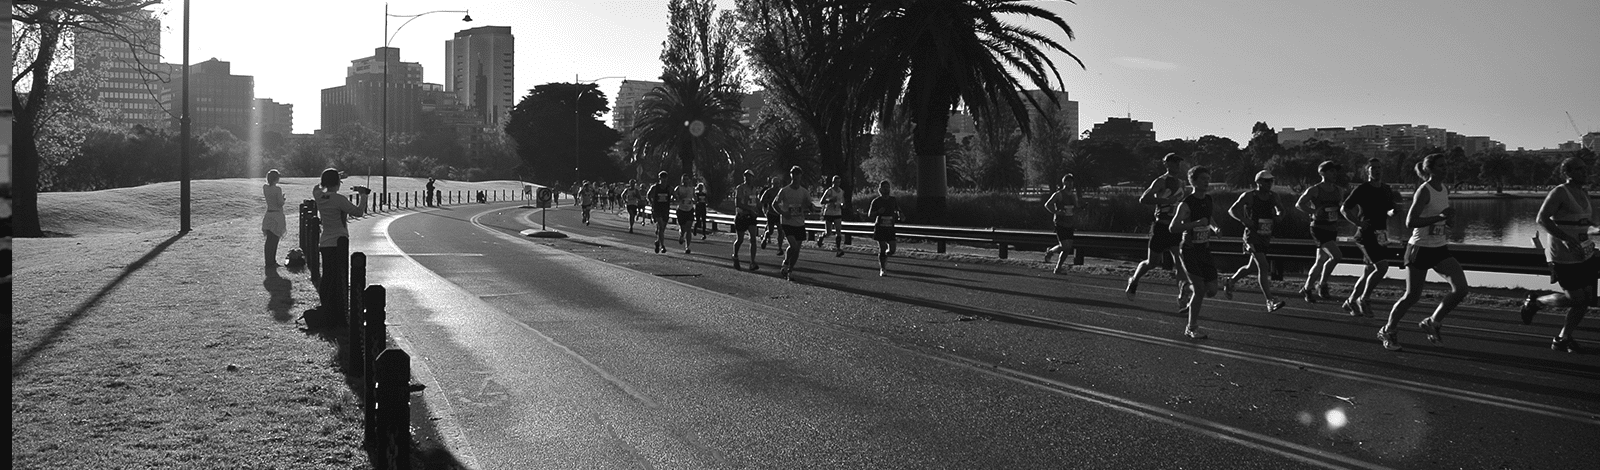 Fun run fitness event in Melbourne, black and white